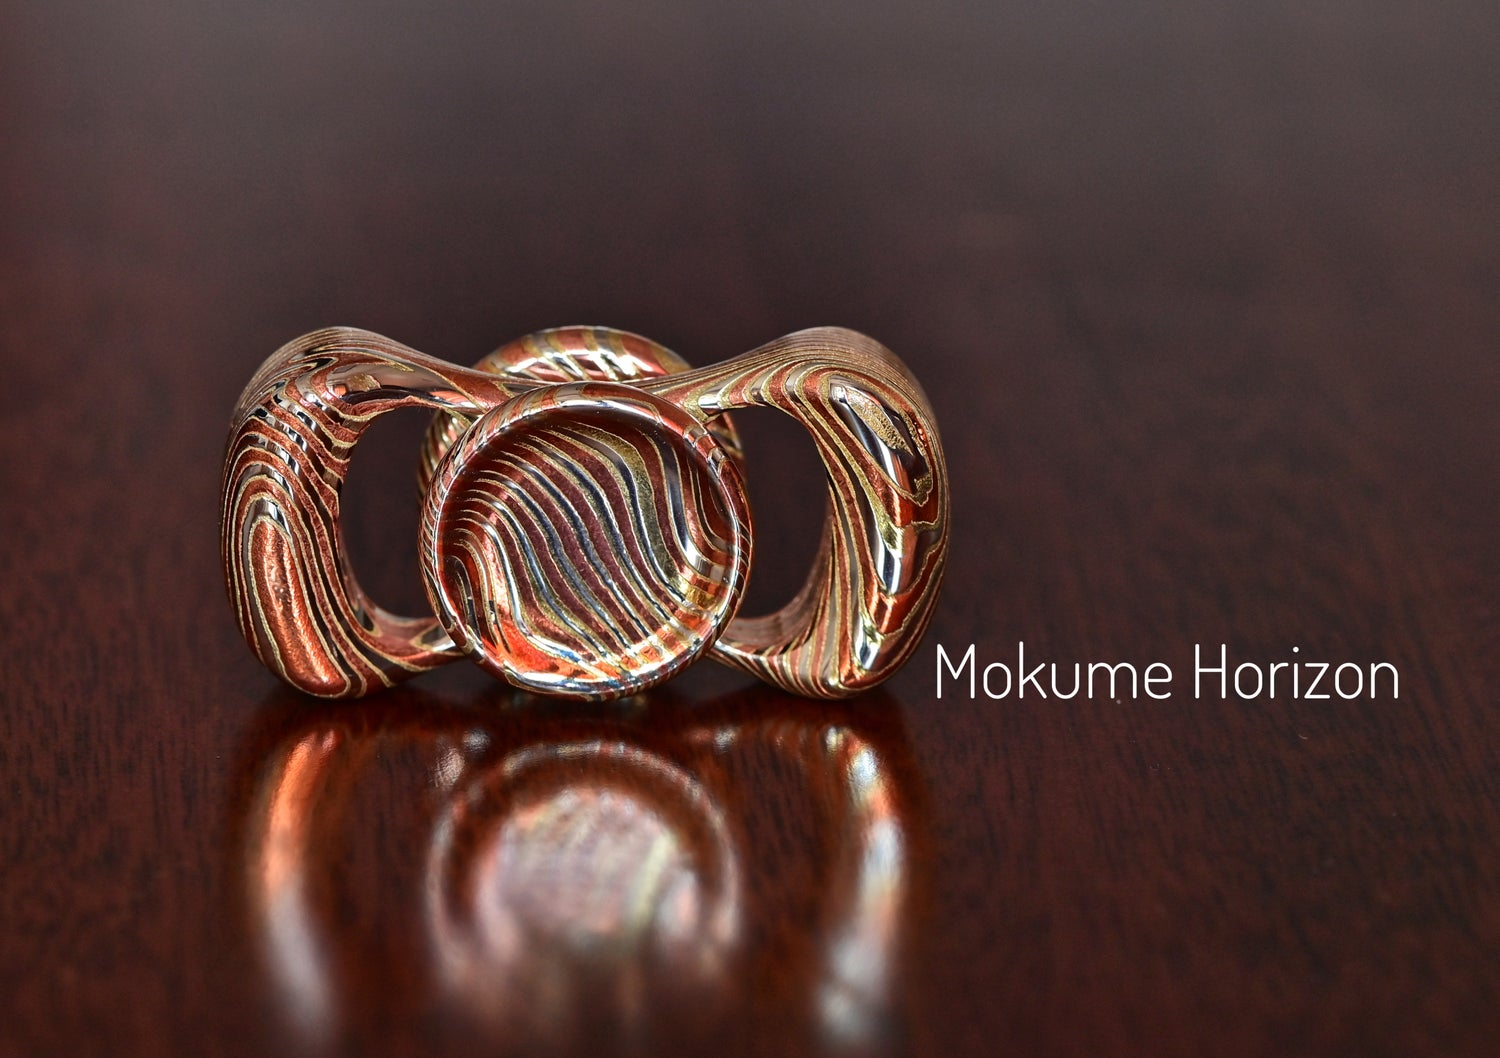 Image of Mokume horizon spinner and R188 bearing tool drop time 15th January 8:00pm EST